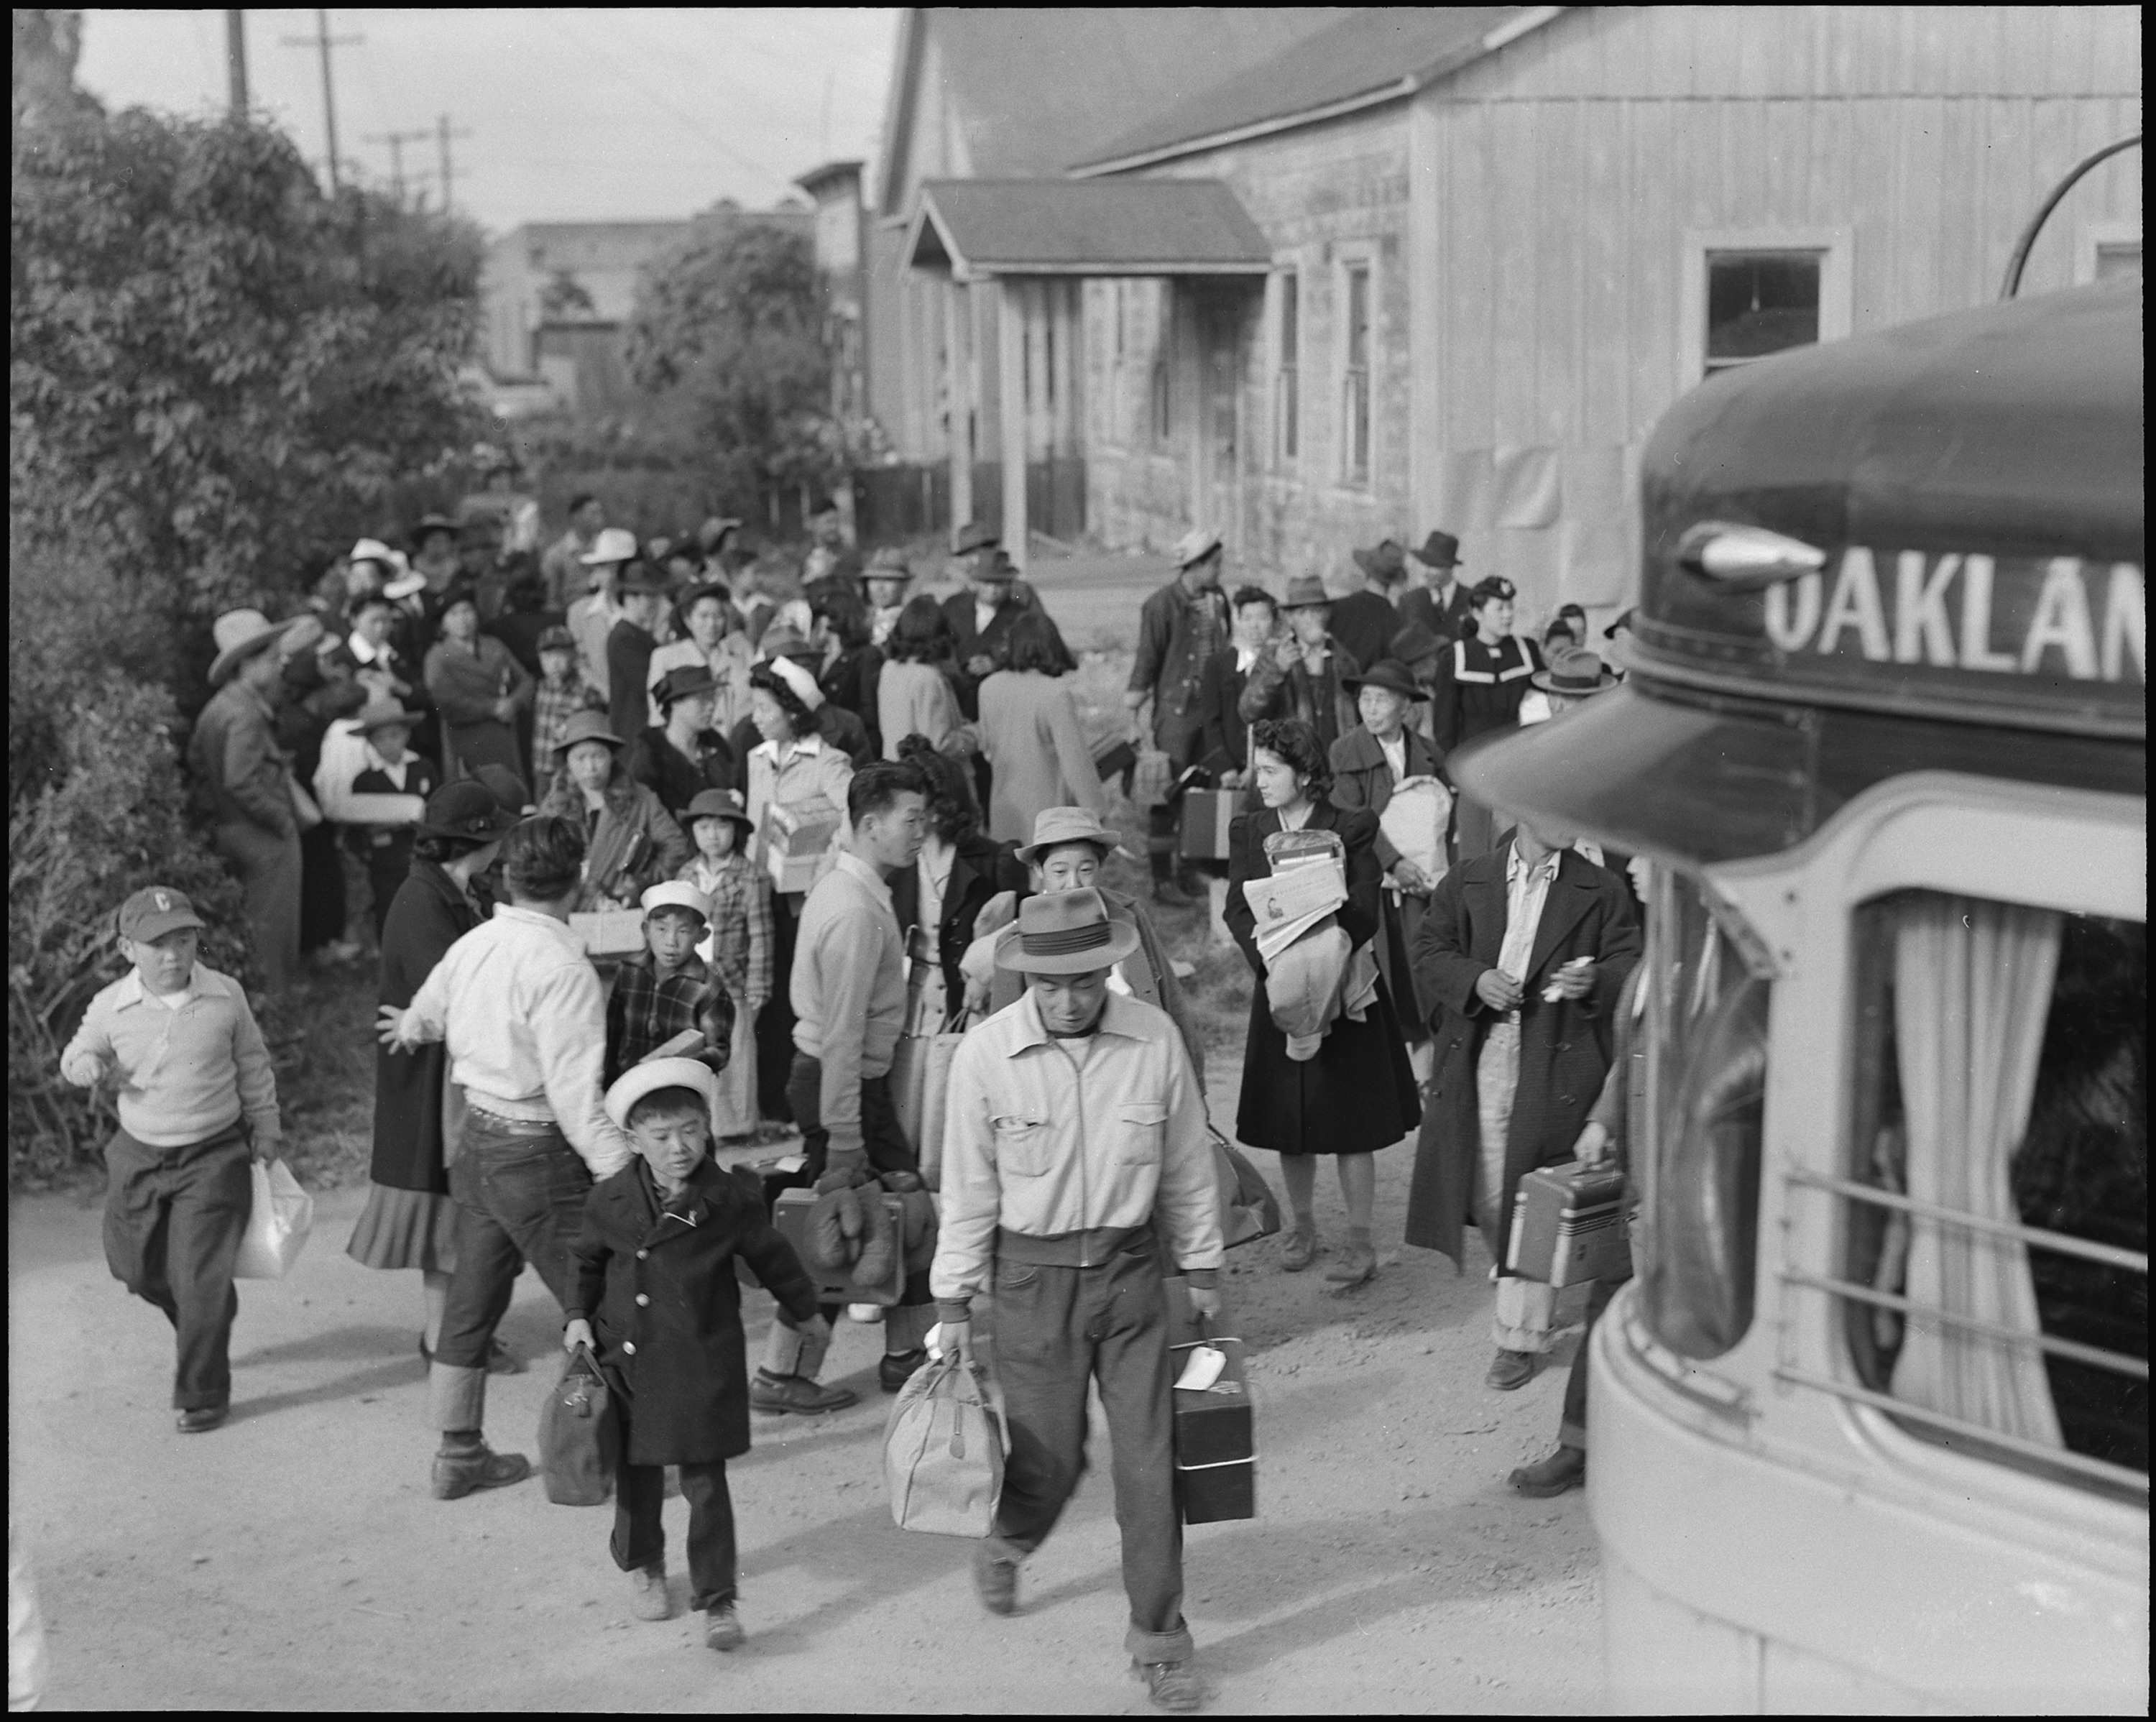 centerville_california-_the_bus_has_just_arrived_and_these_farm_families_of_japanese_ancestry_are_-_-_-_-_nara_-_537582